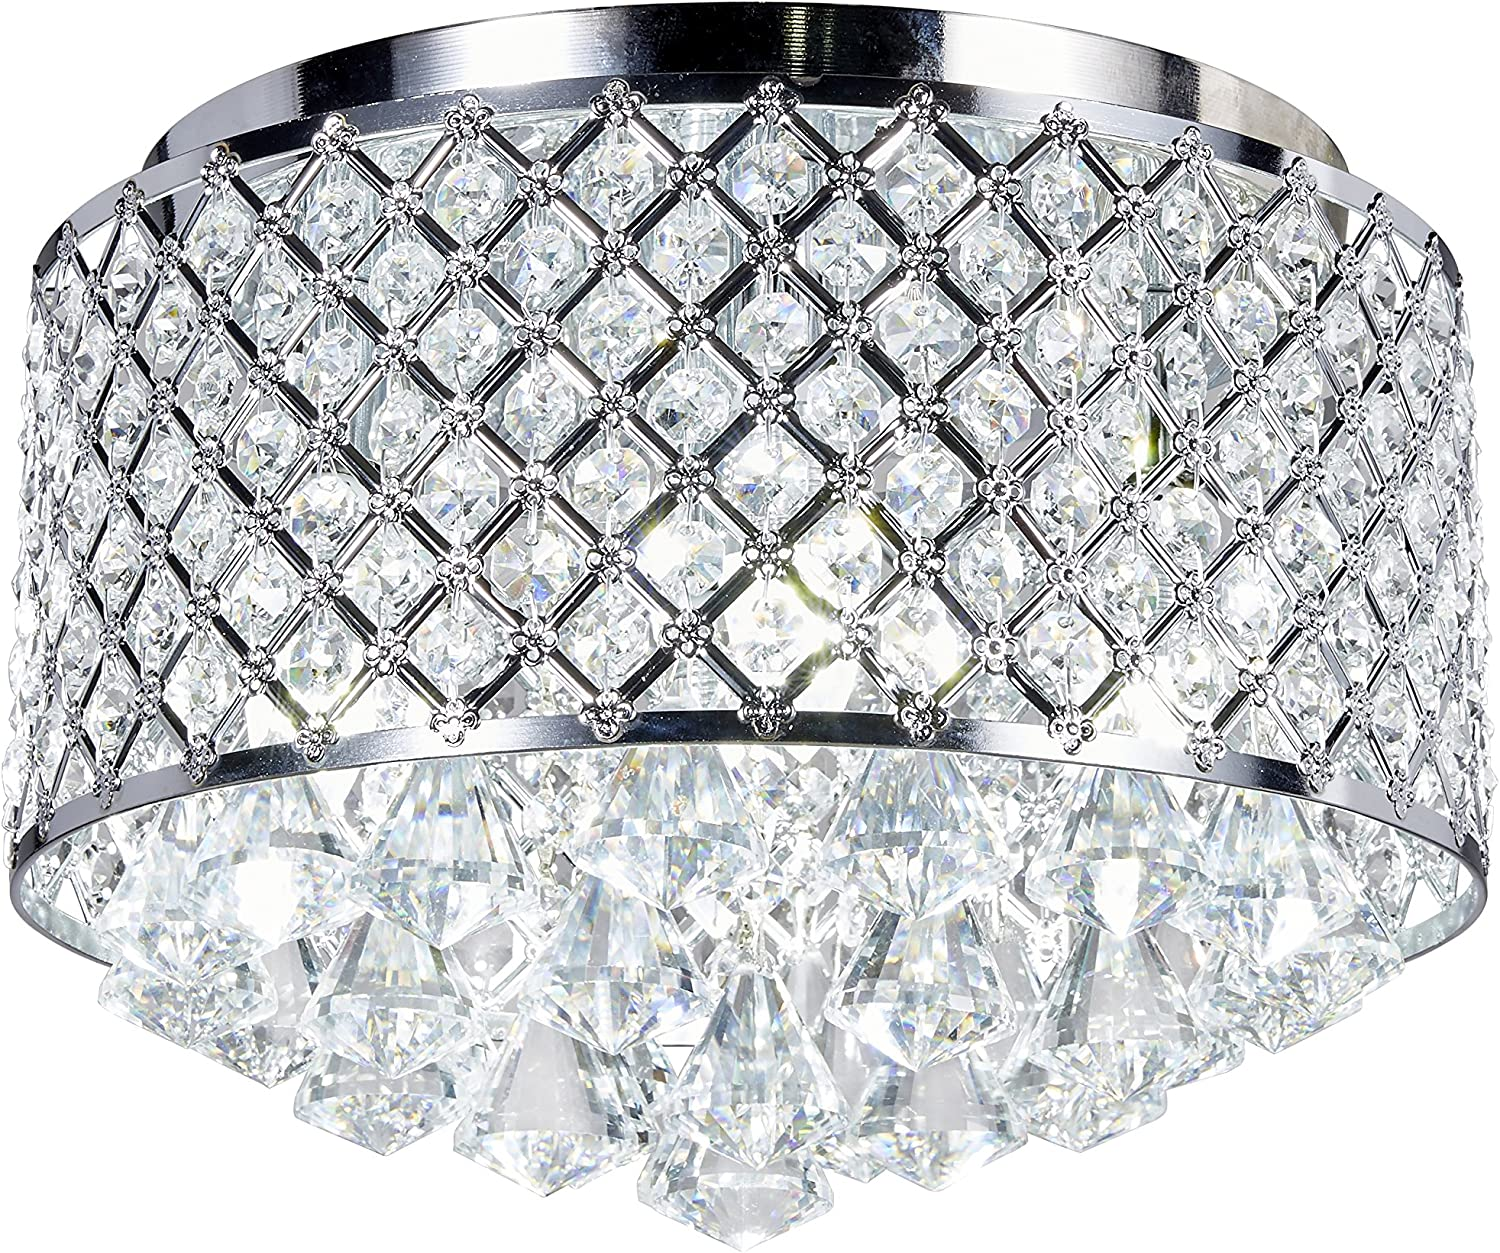 Broadway Silver Classic Crystal Chandeliers Modern Lamps Pendant Light Flush Mount Ceiling Hand-polished Fixture BL-ABJ X-L4 W14 X H14 Inch